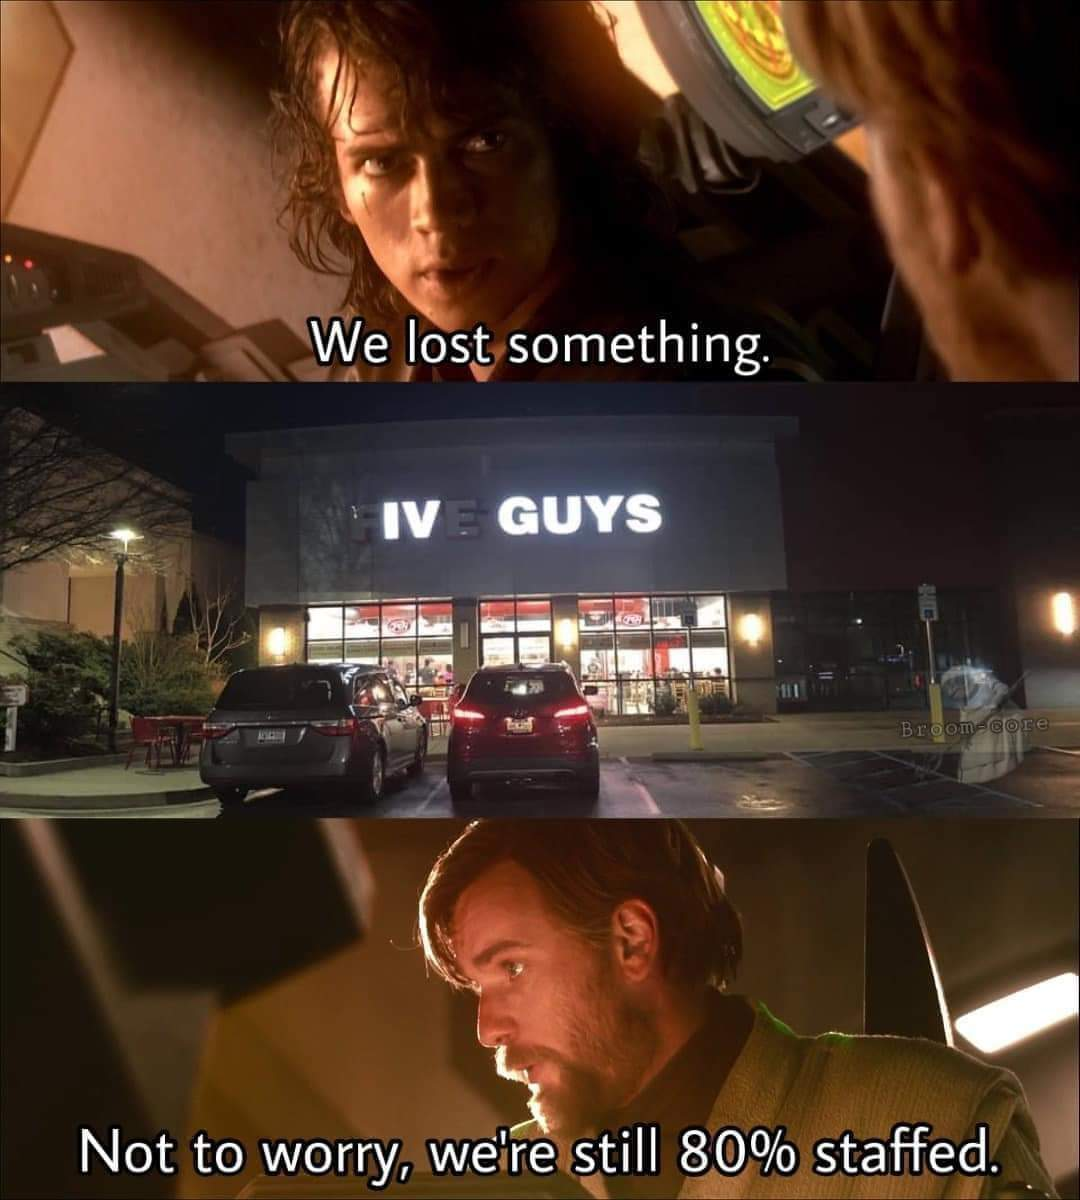 Memes Five guys restaurant Star Wars